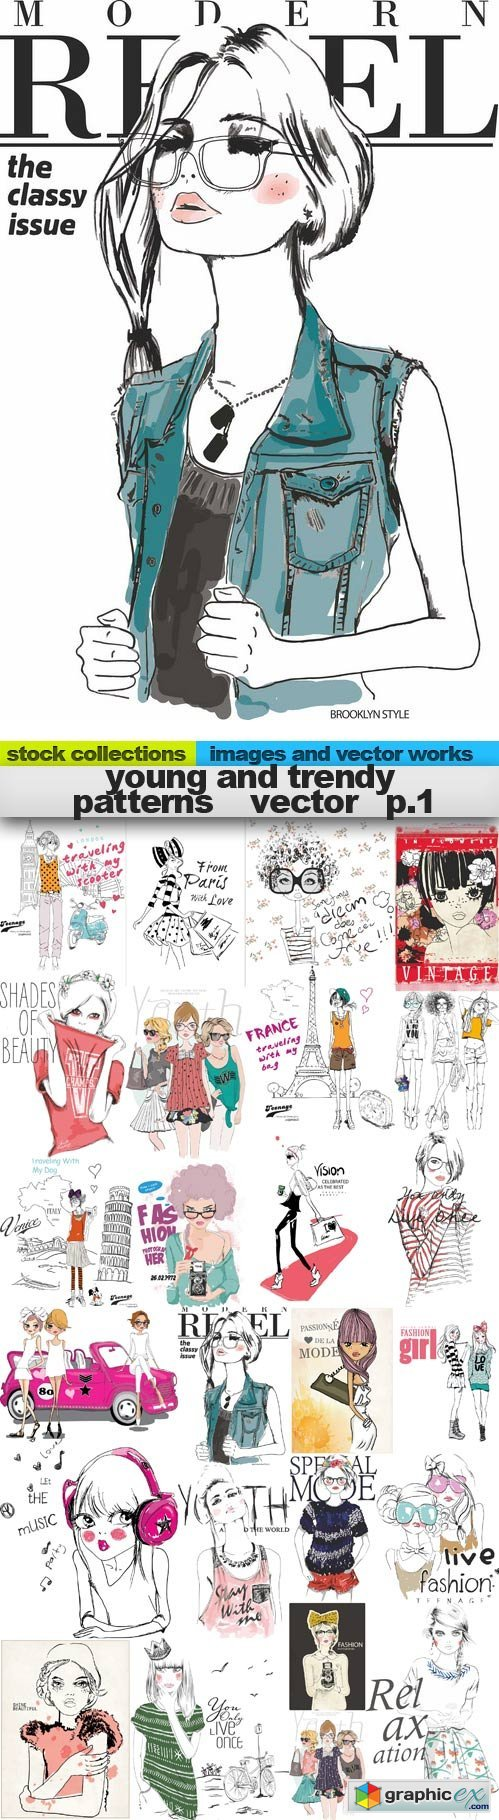 Young and trendy patterns vector 1,25 x EPS